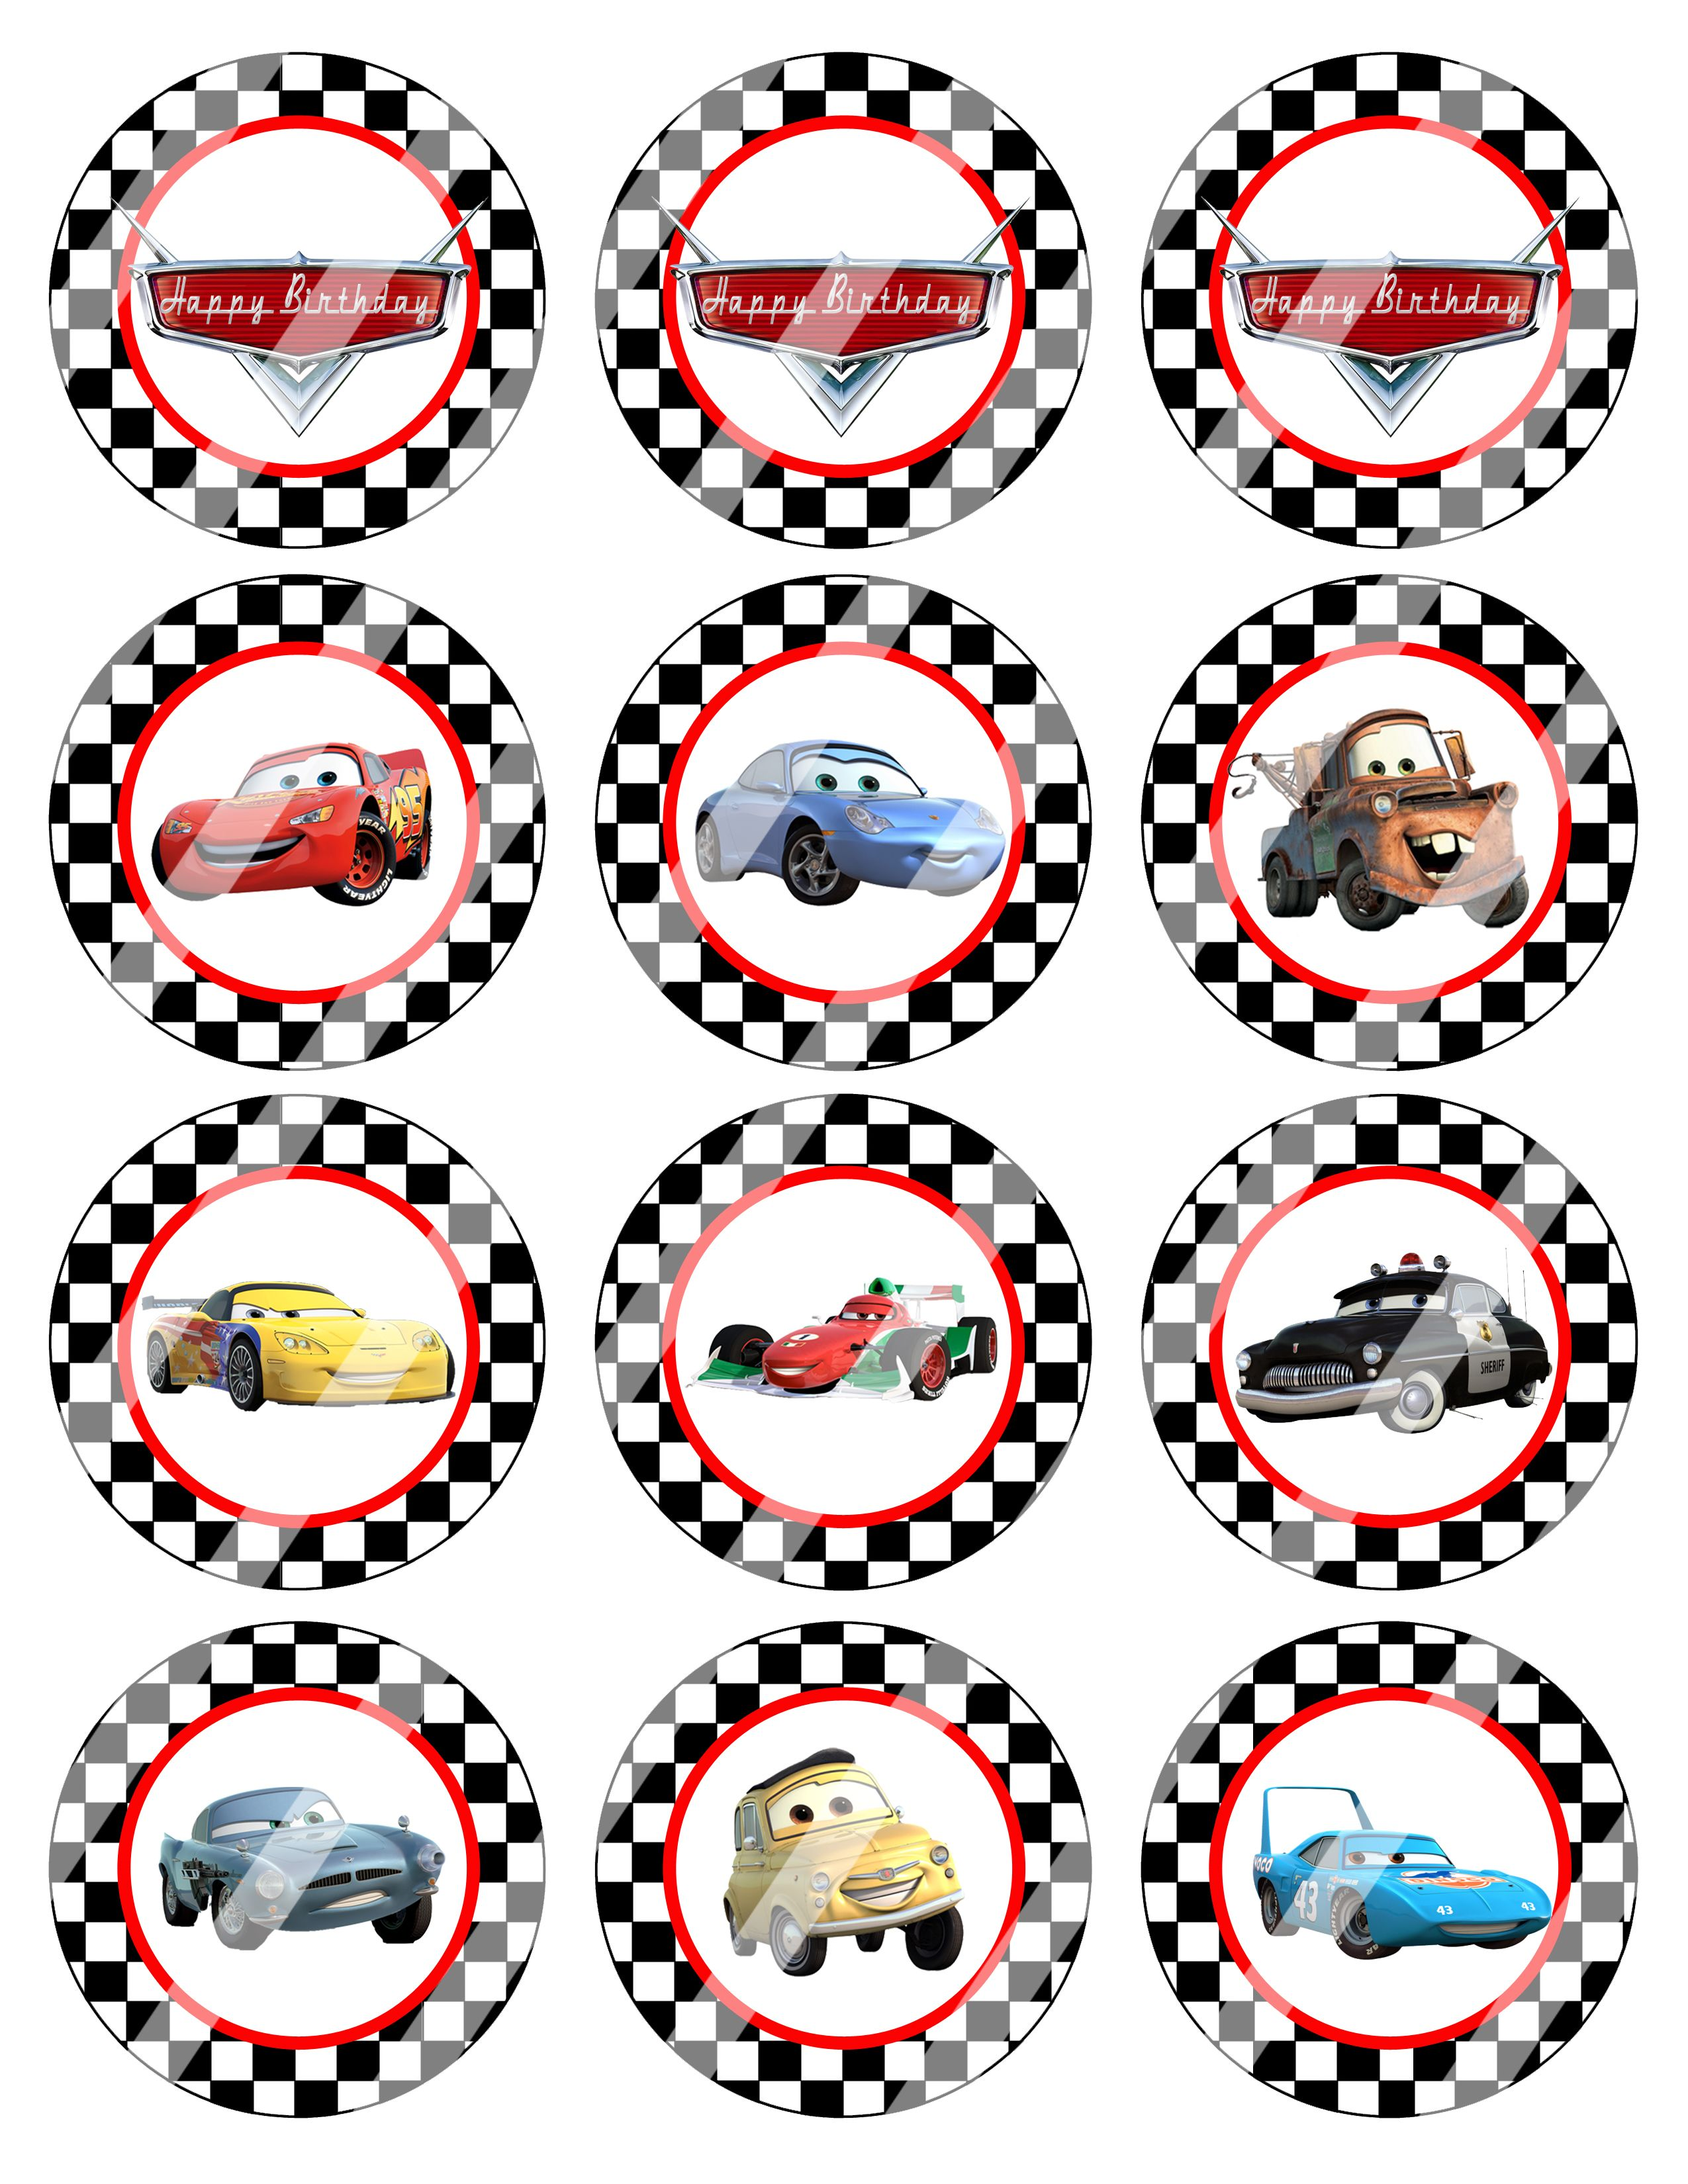 65dc7d2d97b Disney Cars 2 Birthday Cupcake toppers or gift tags  2.99